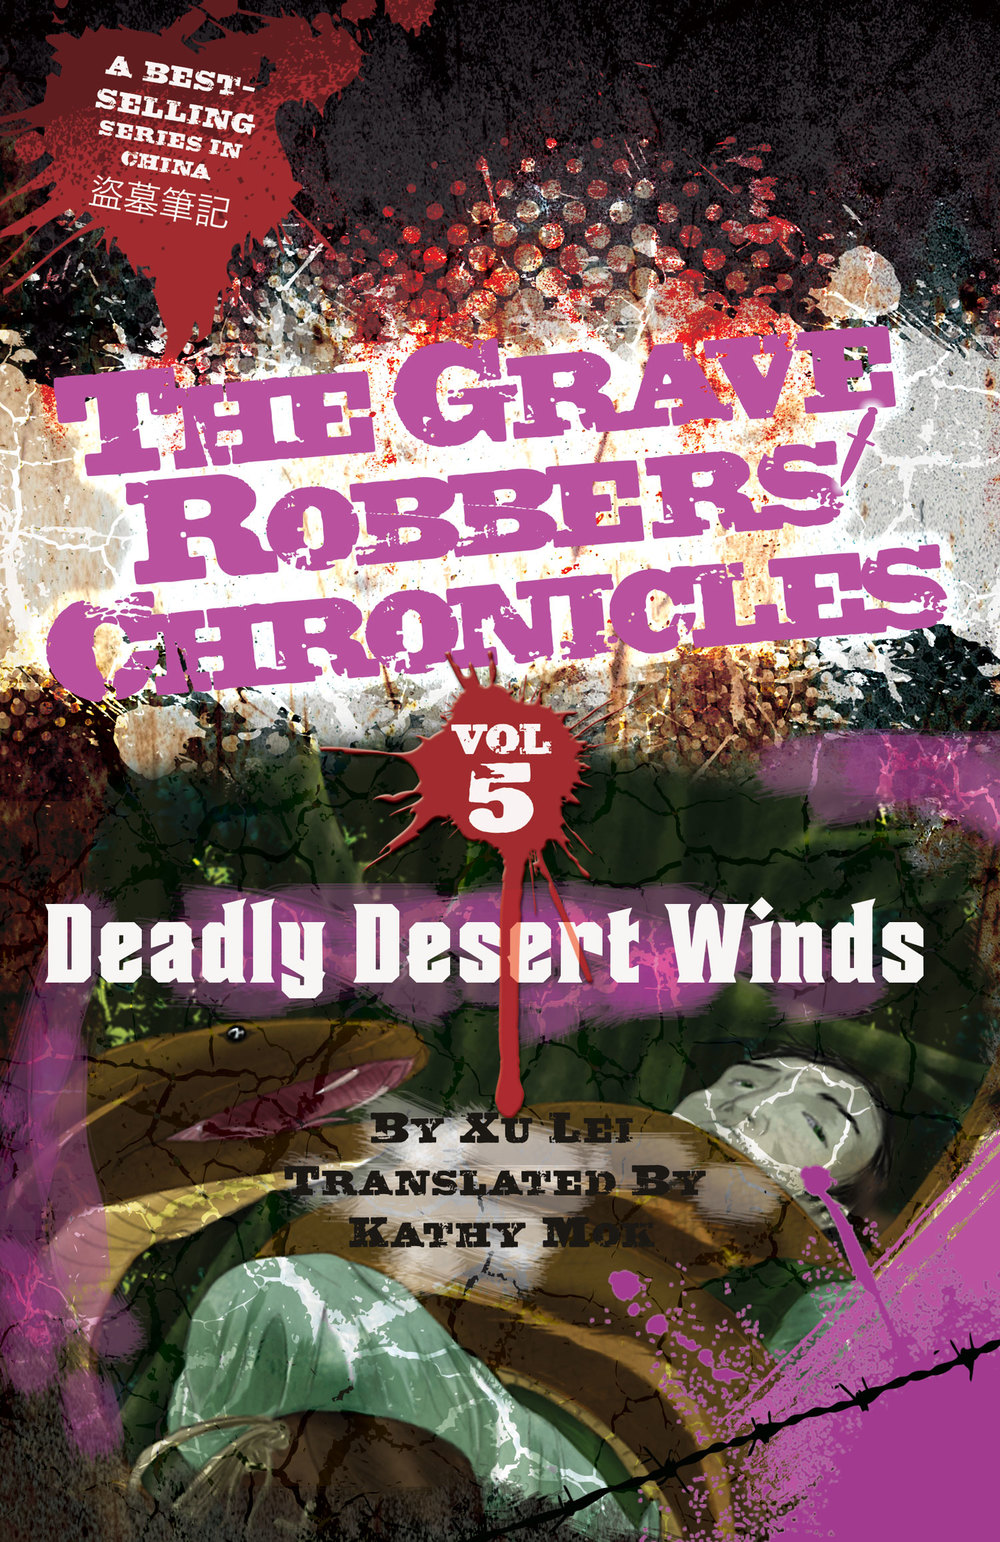 Vol. 5: Deadly Dessert Winds